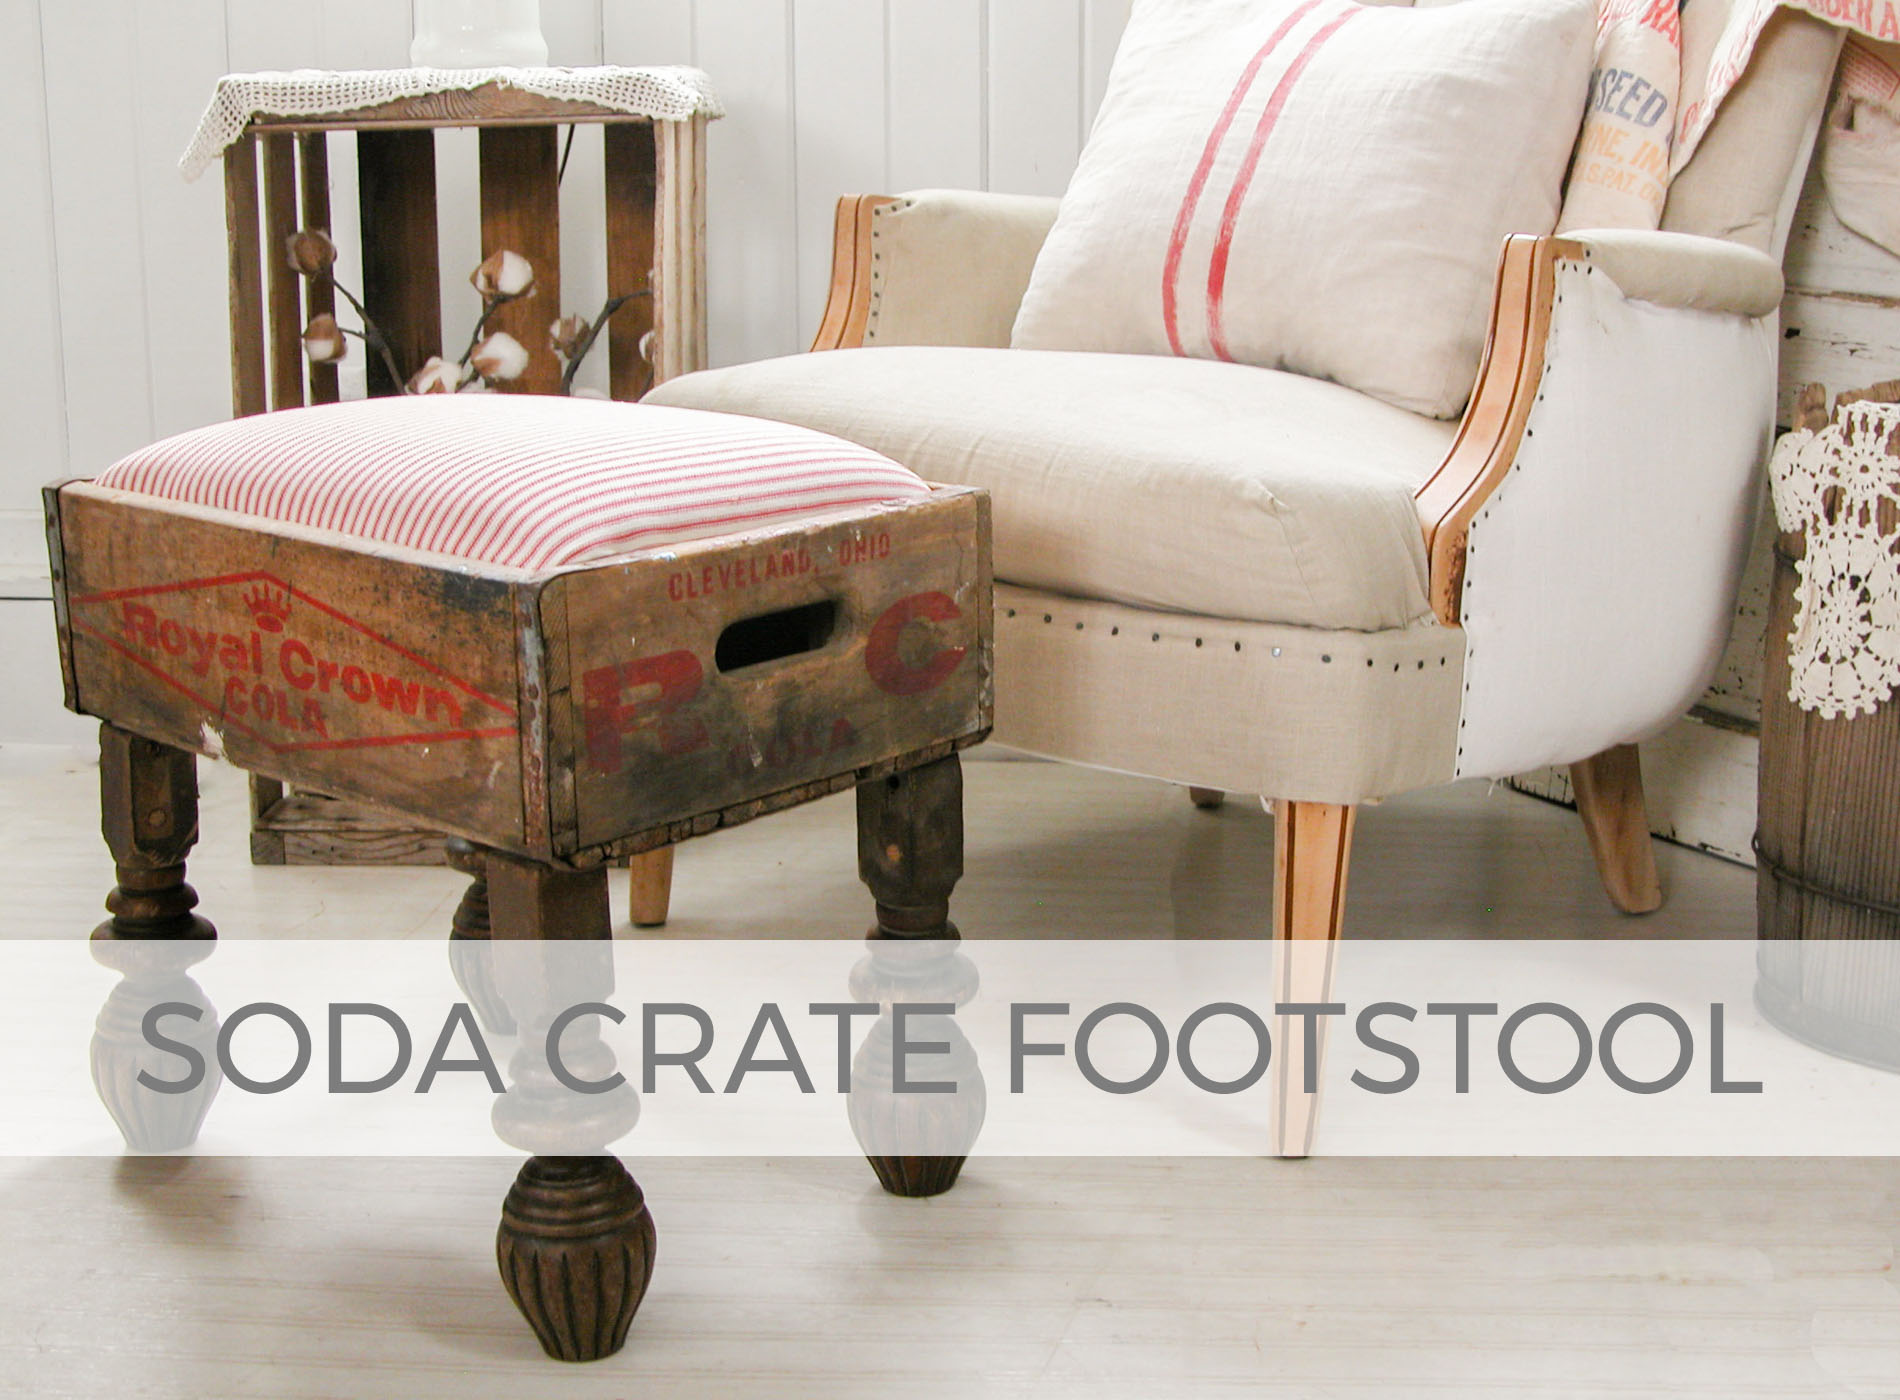 Soda Crate Footstool by Larissa of Prodigal Pieces | prodigalpieces.com